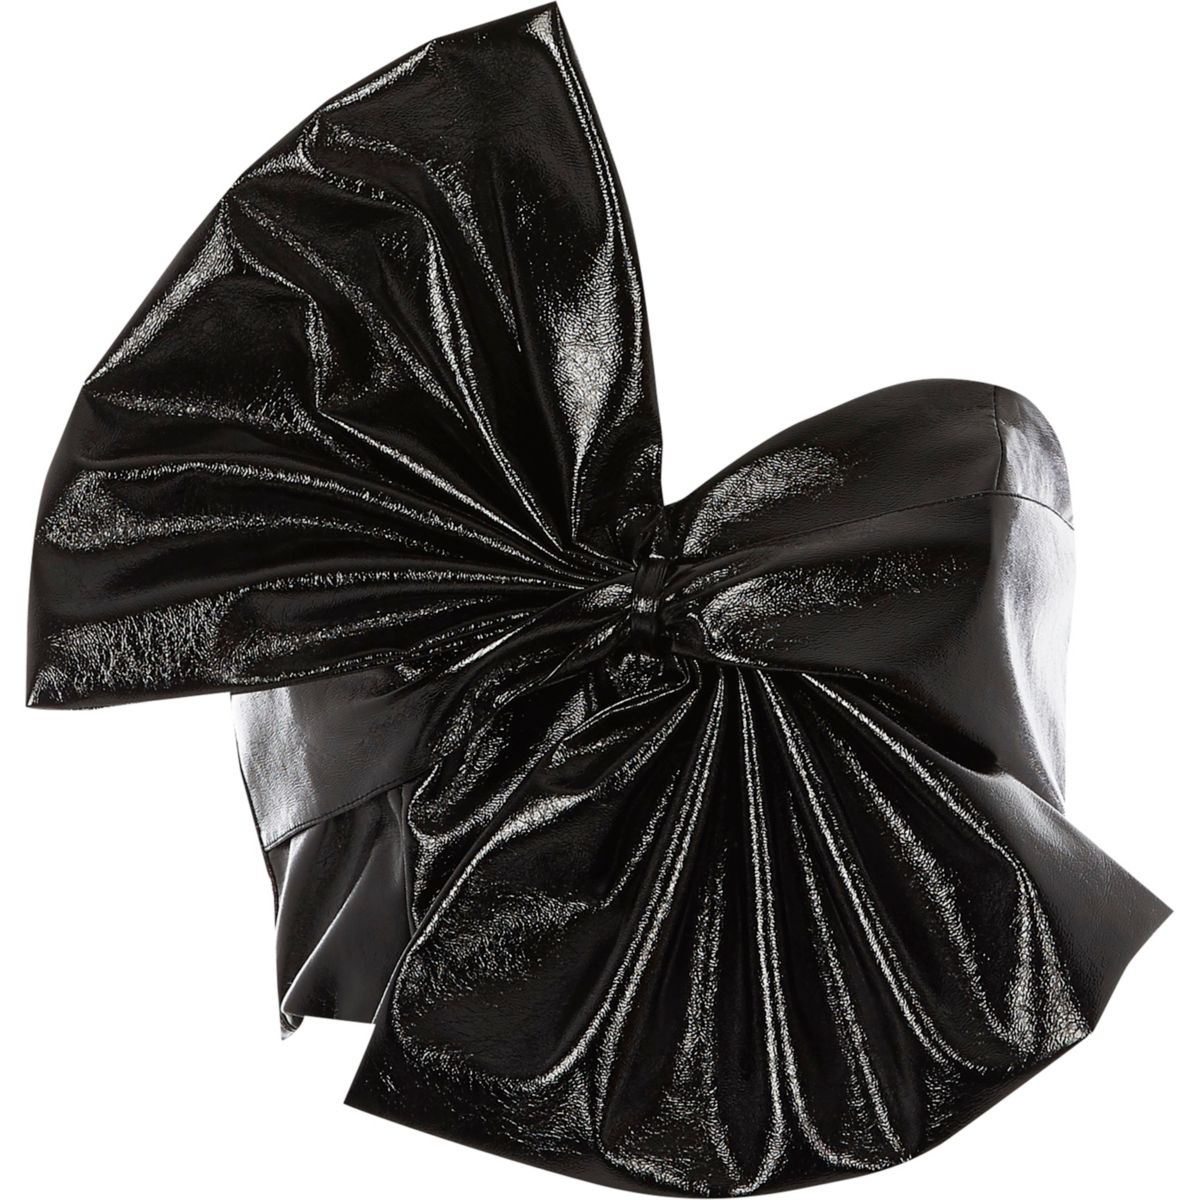 Black oversized bow vinyl crop top